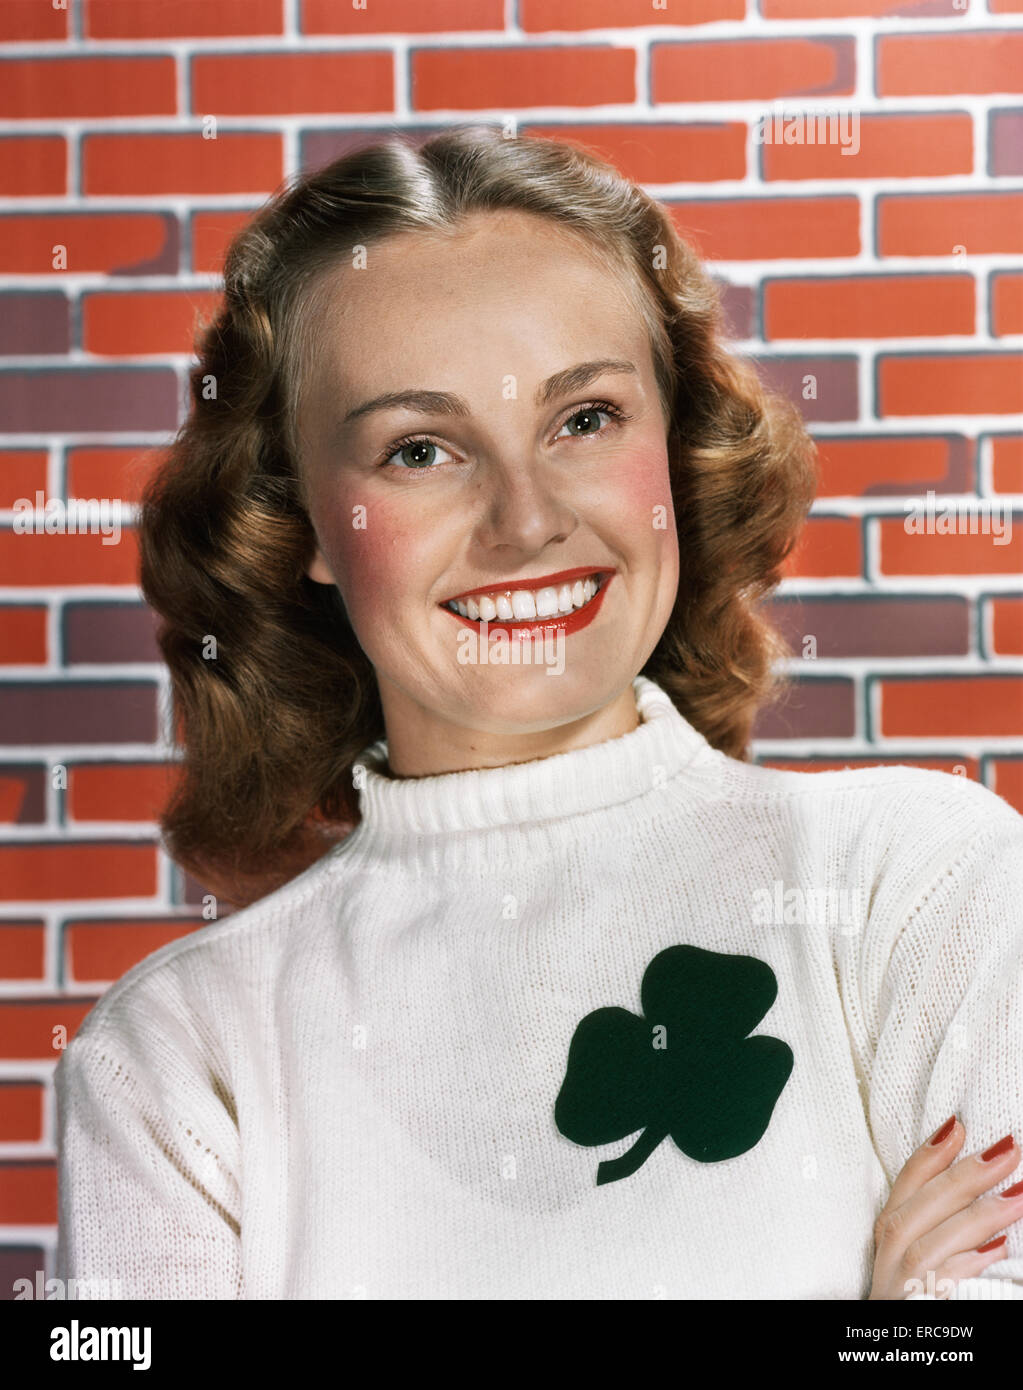 1940s 1950s PORTRAIT SMILING WOMAN WEARING WHITE SWEATER WITH SHAMROCK DESIGN LOOKING AT CAMERA - Stock Image